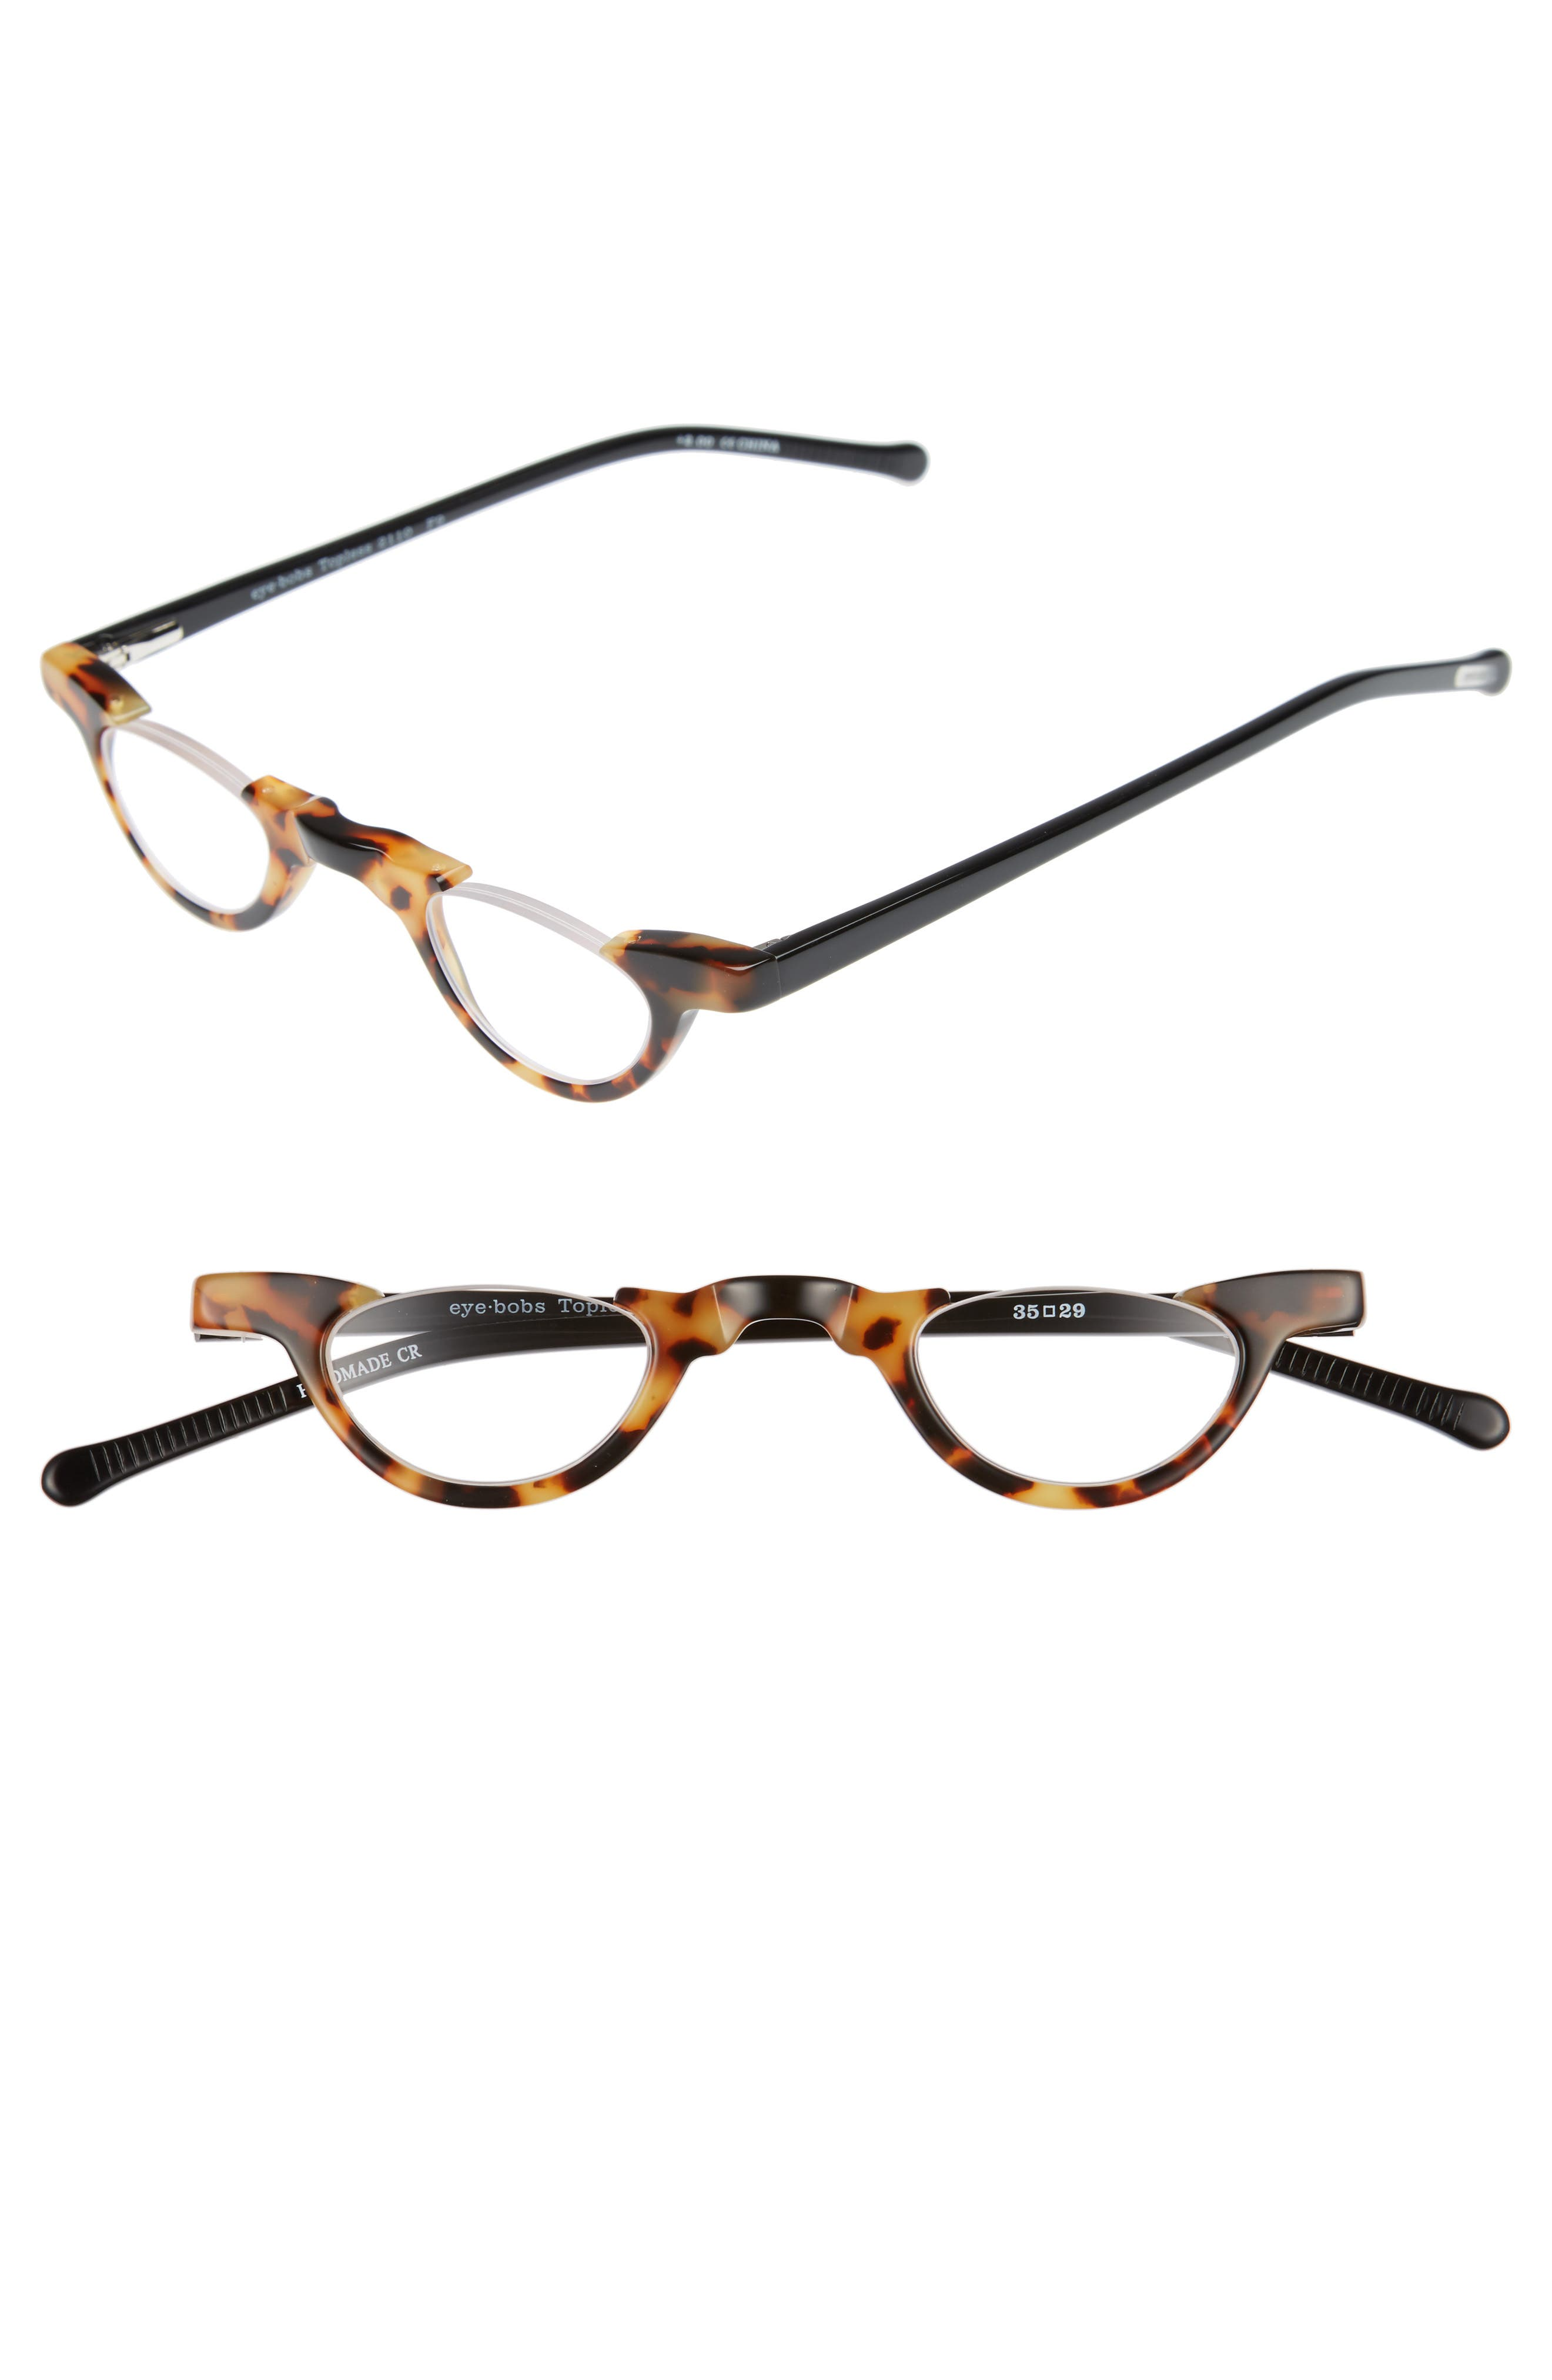 Topless 35mm Reading Glasses,                             Main thumbnail 1, color,                             211